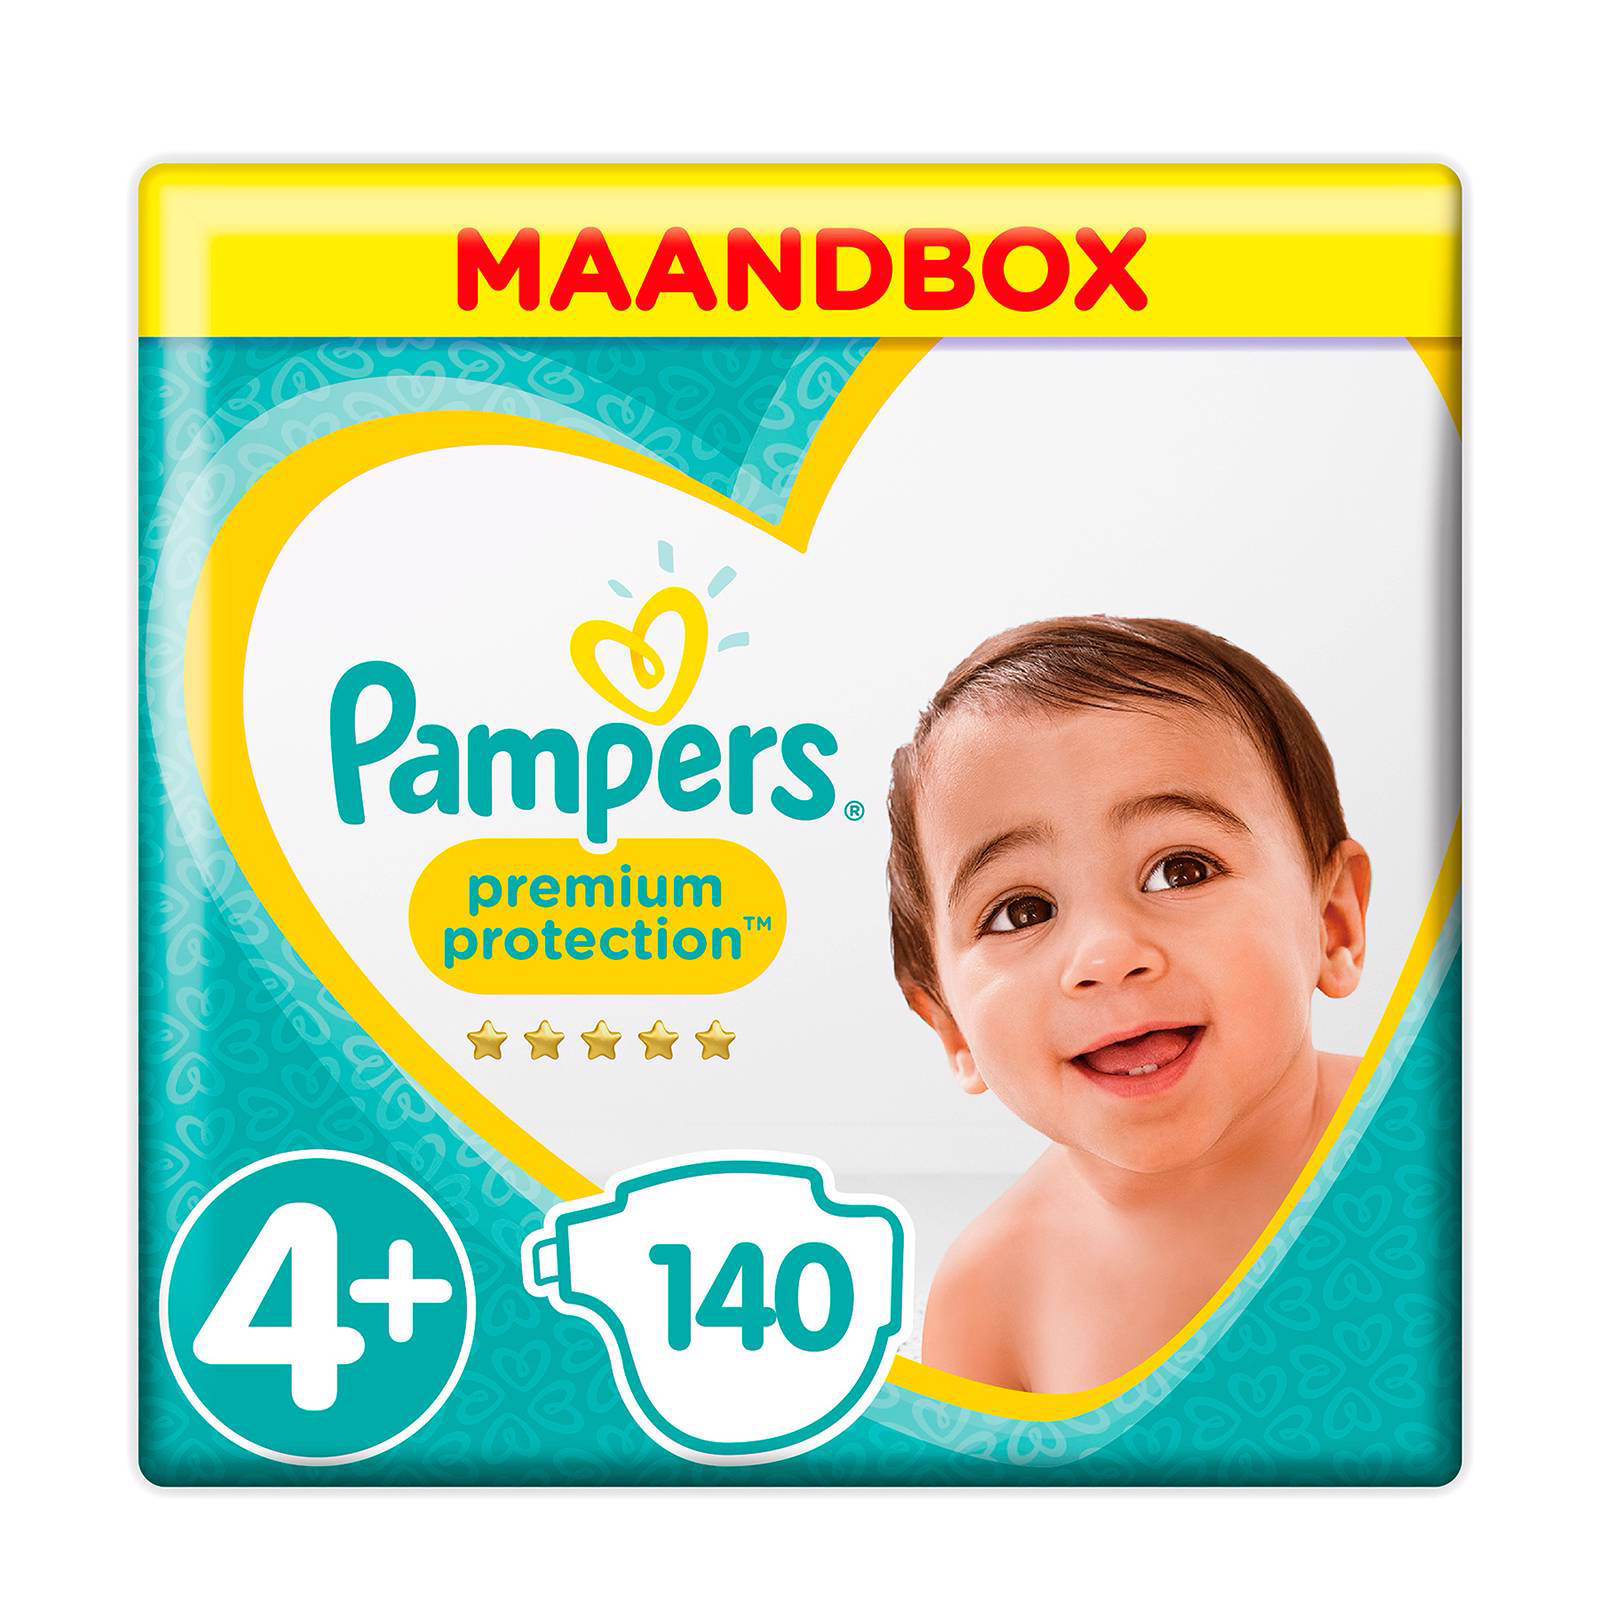 Pampers Premium Protection maandbox maat 4+ (10-15 kg) 140 luiers